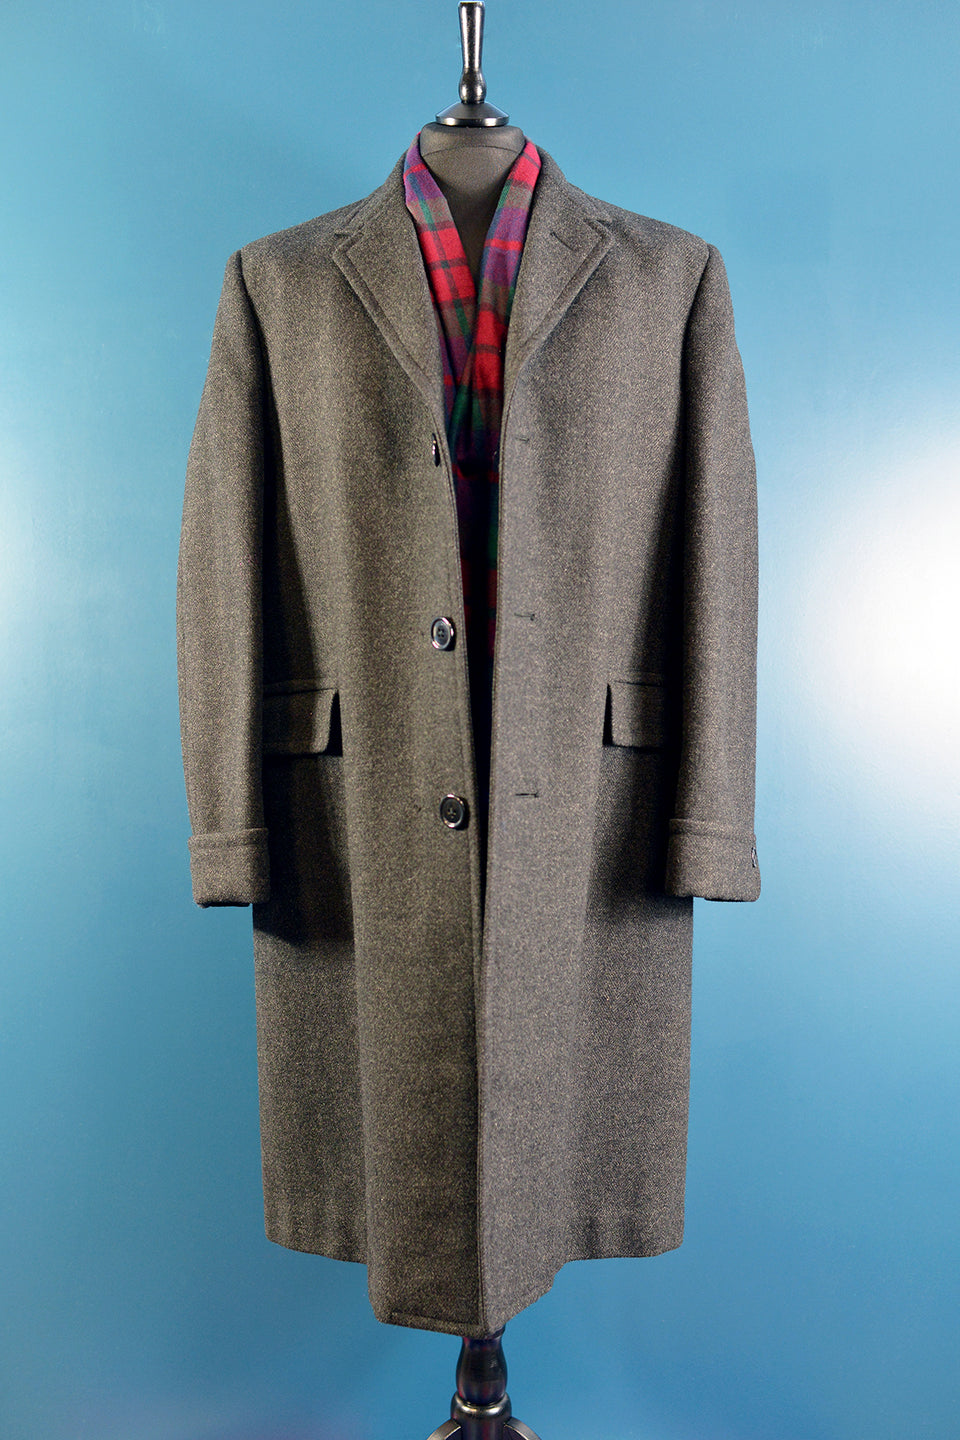 CROMBIE Men's Long Wool Charcoal Grey Overcoat, Size M/L. Pre-loved.